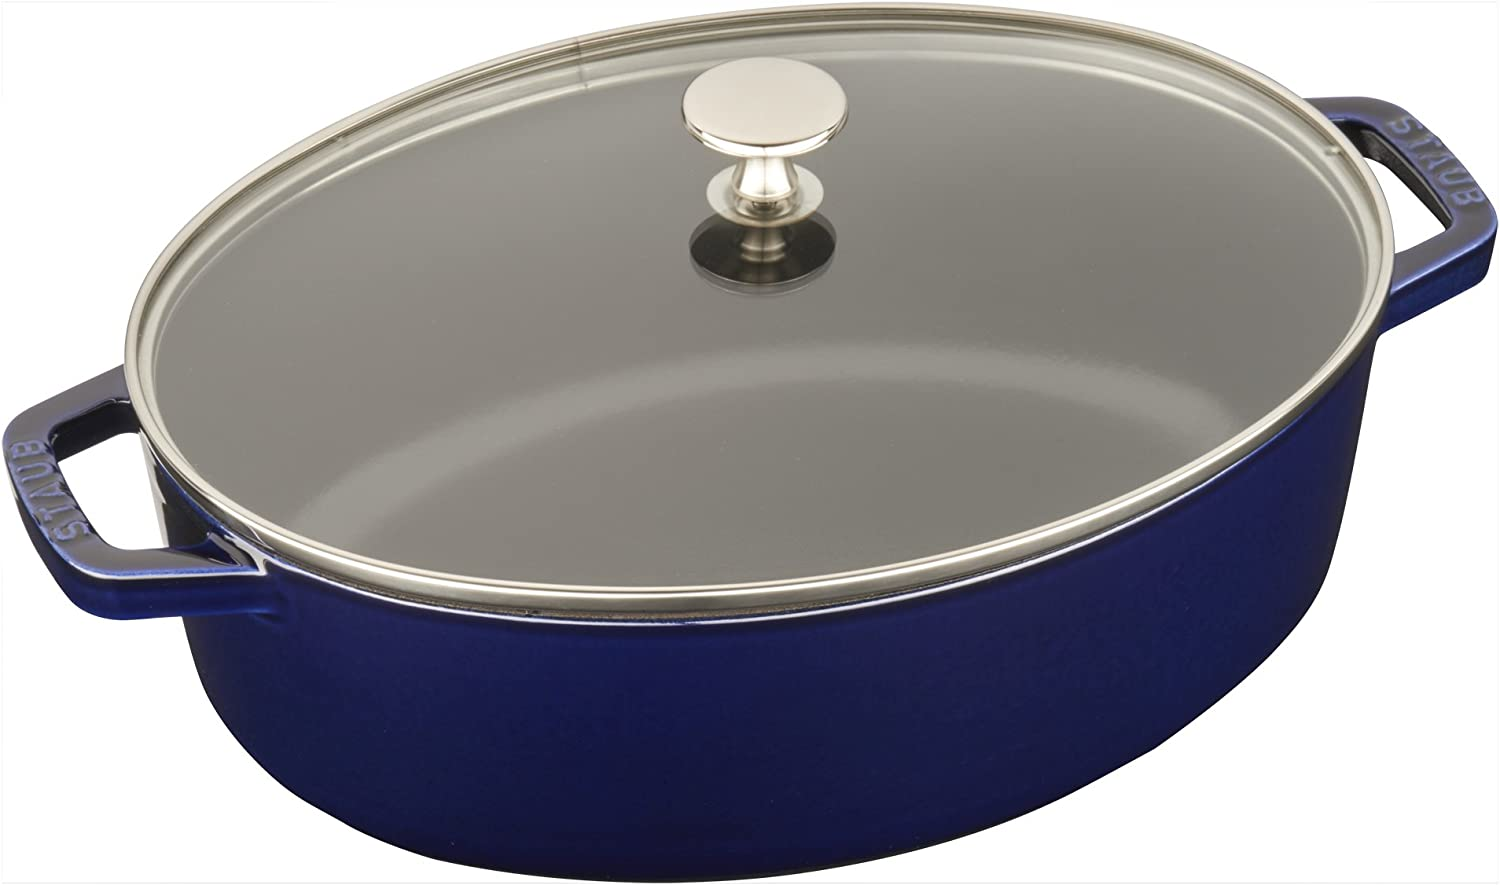 Staub Cast Iron 4-qt Shallow Wide Oval Cocotte with Glass Lid - Dark Blue